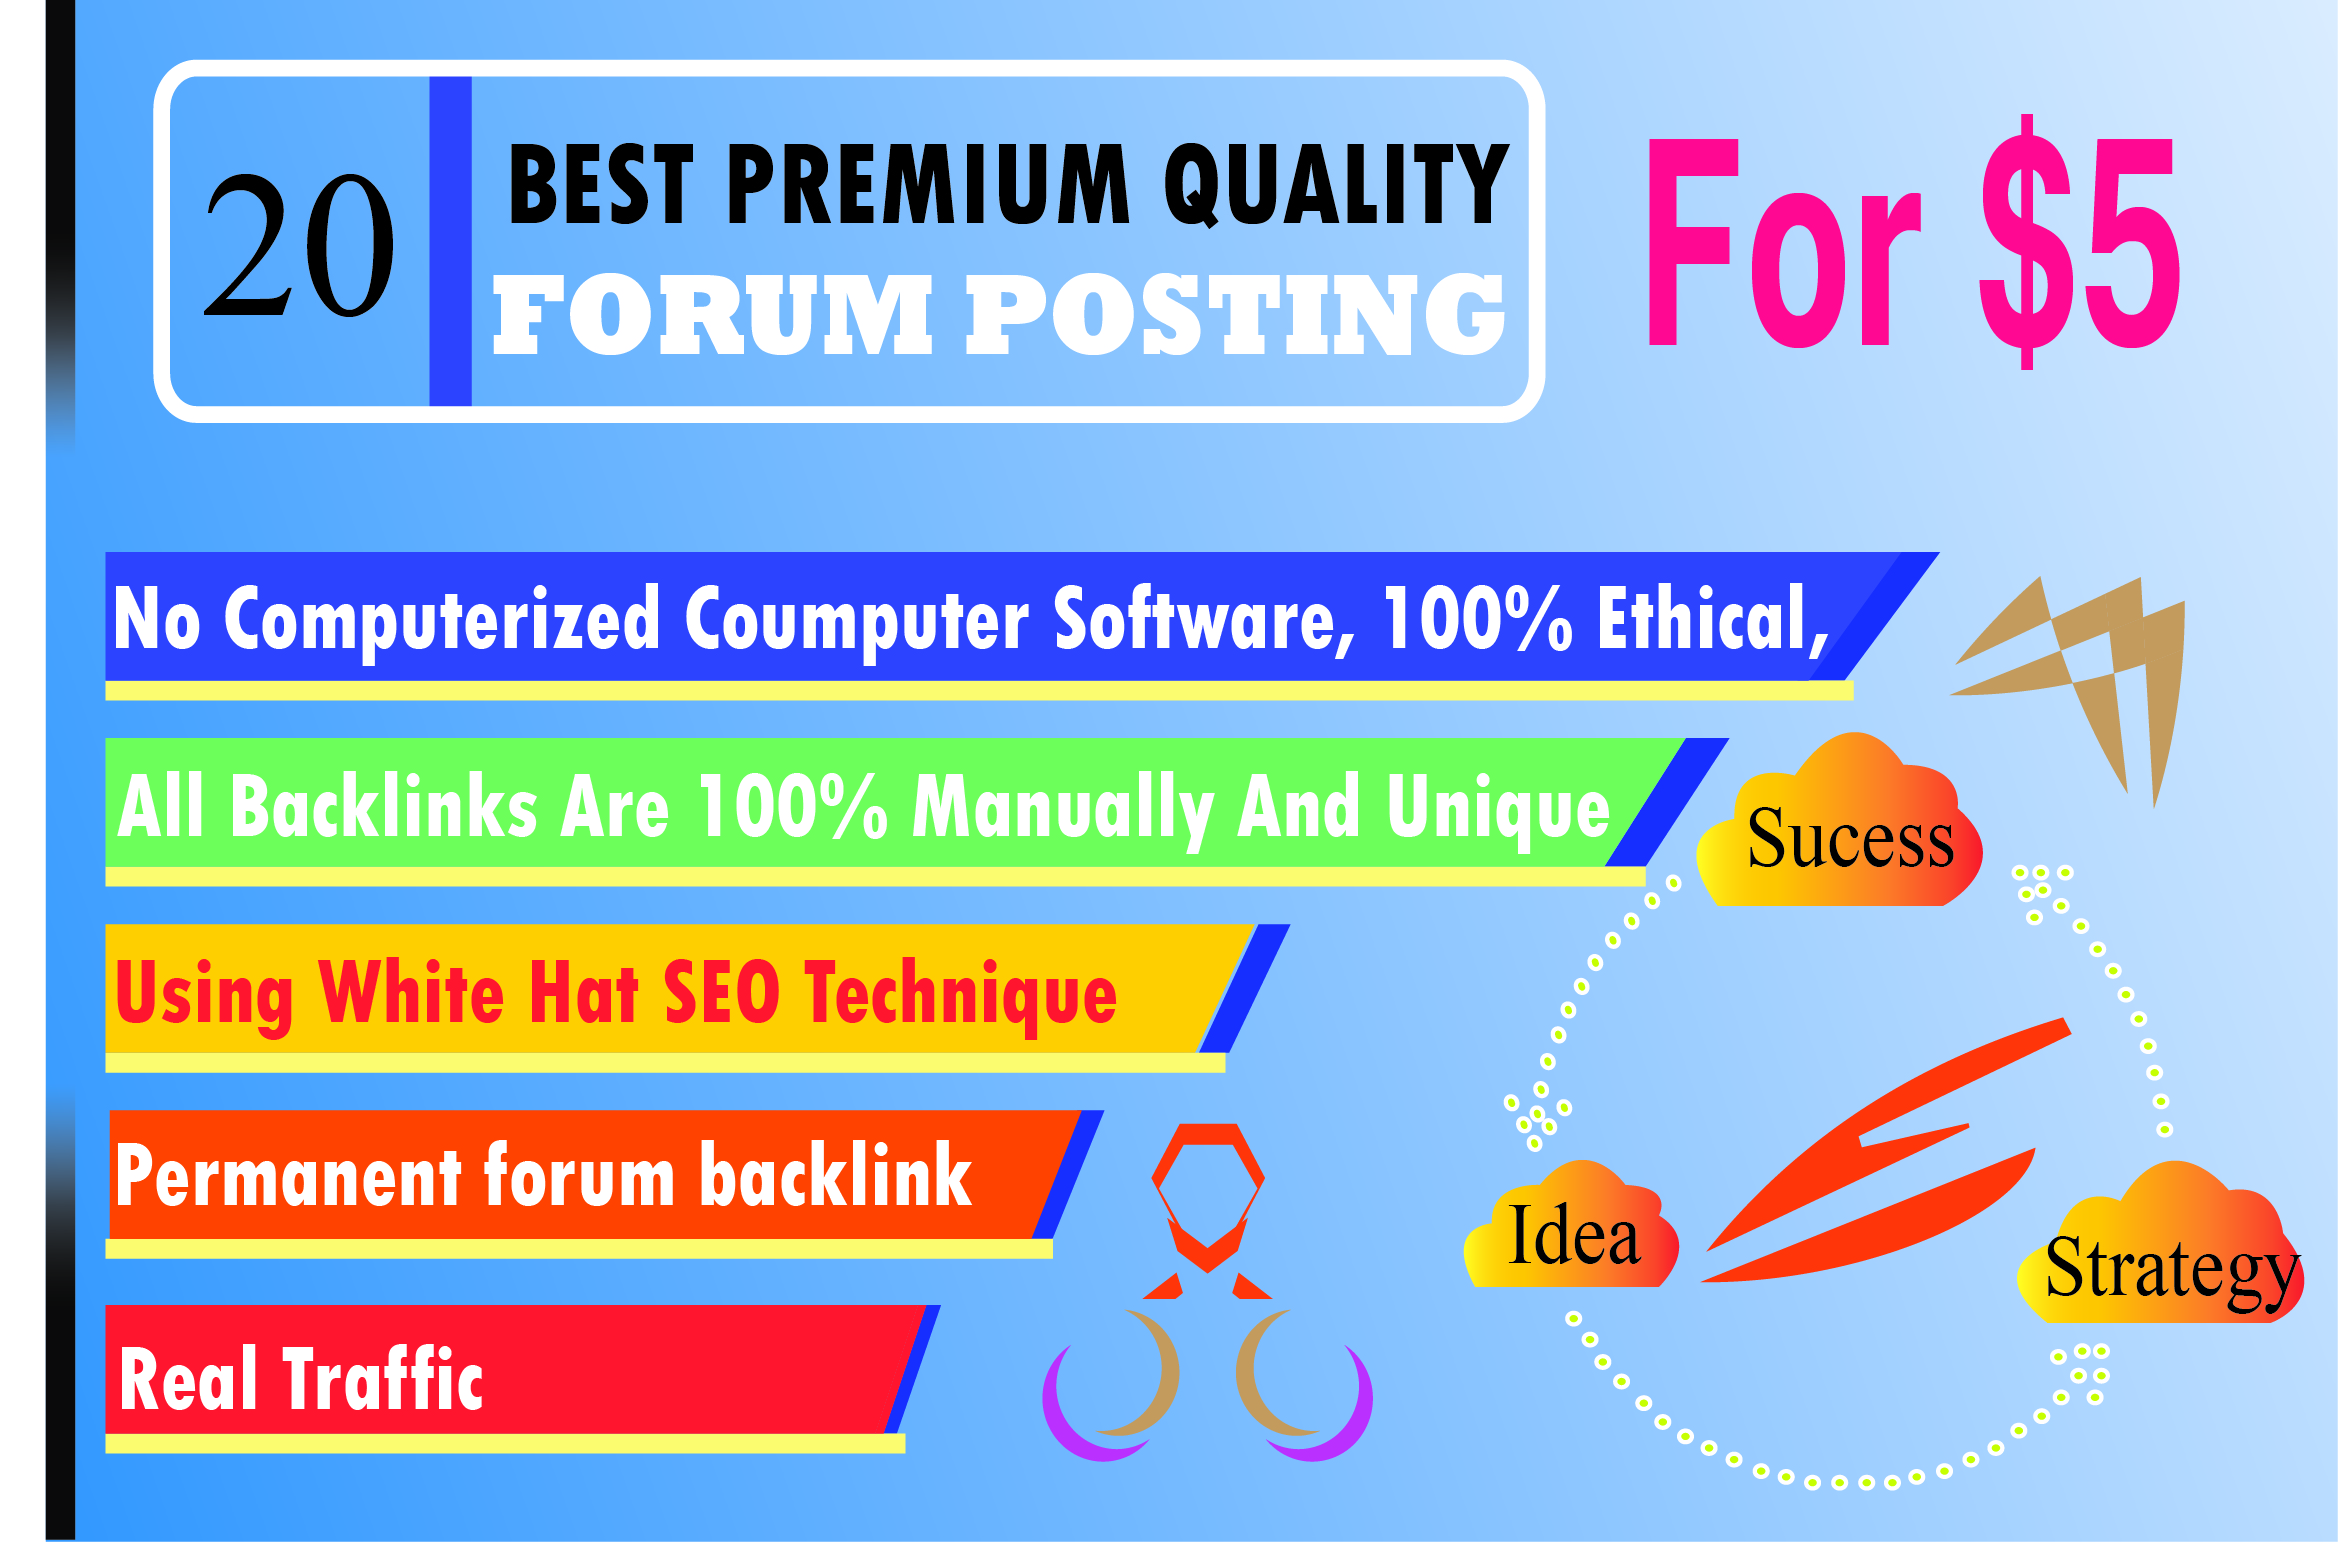 20 general forum posting your product or service